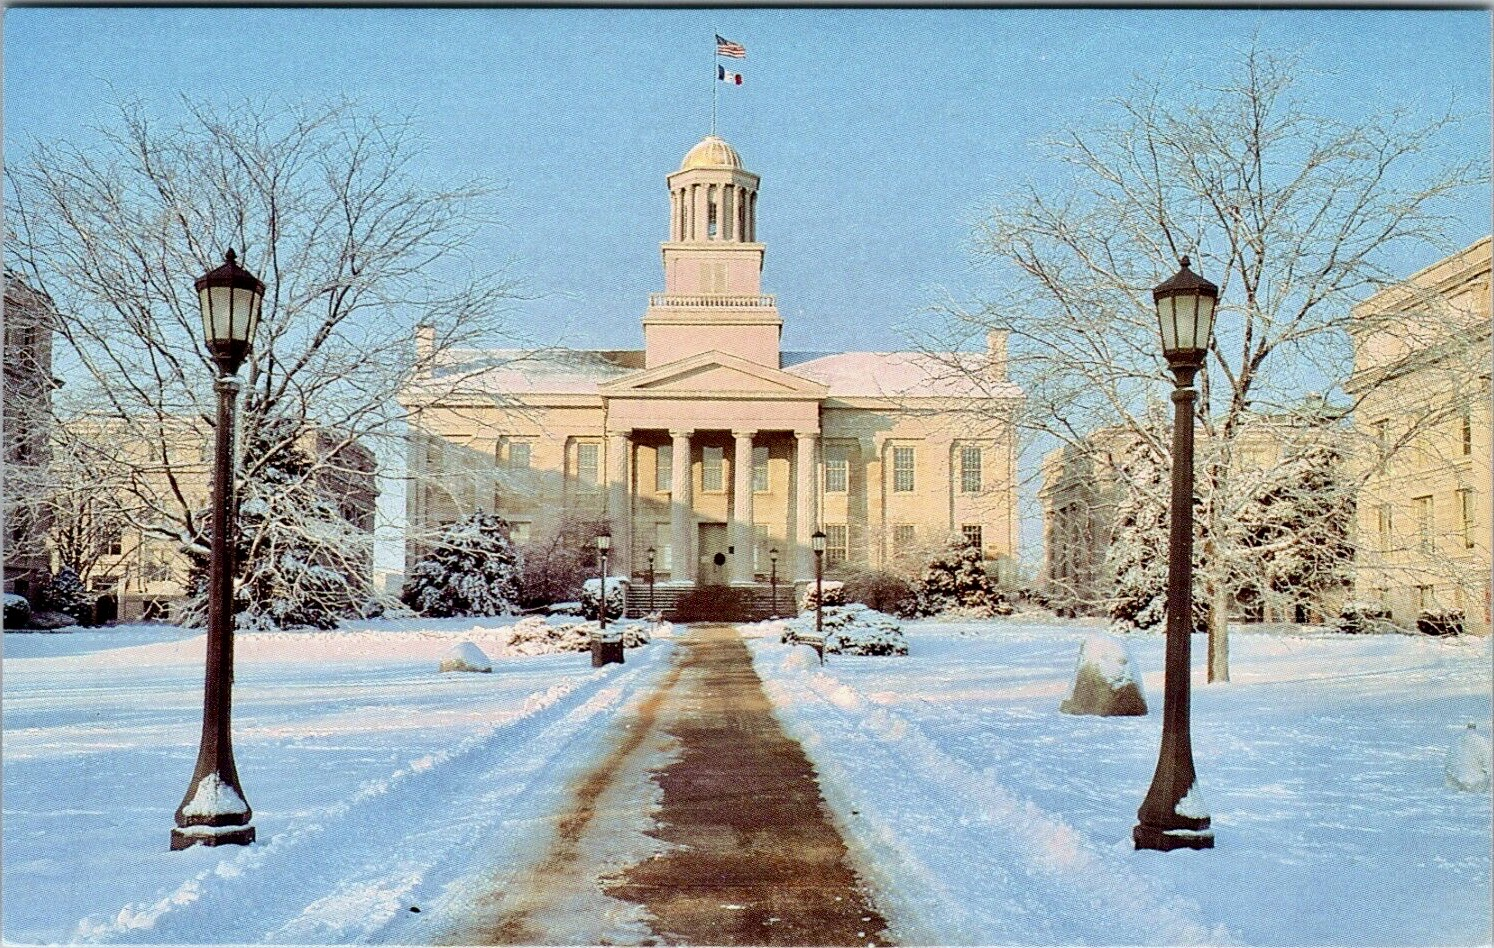 OldCapitol-winter